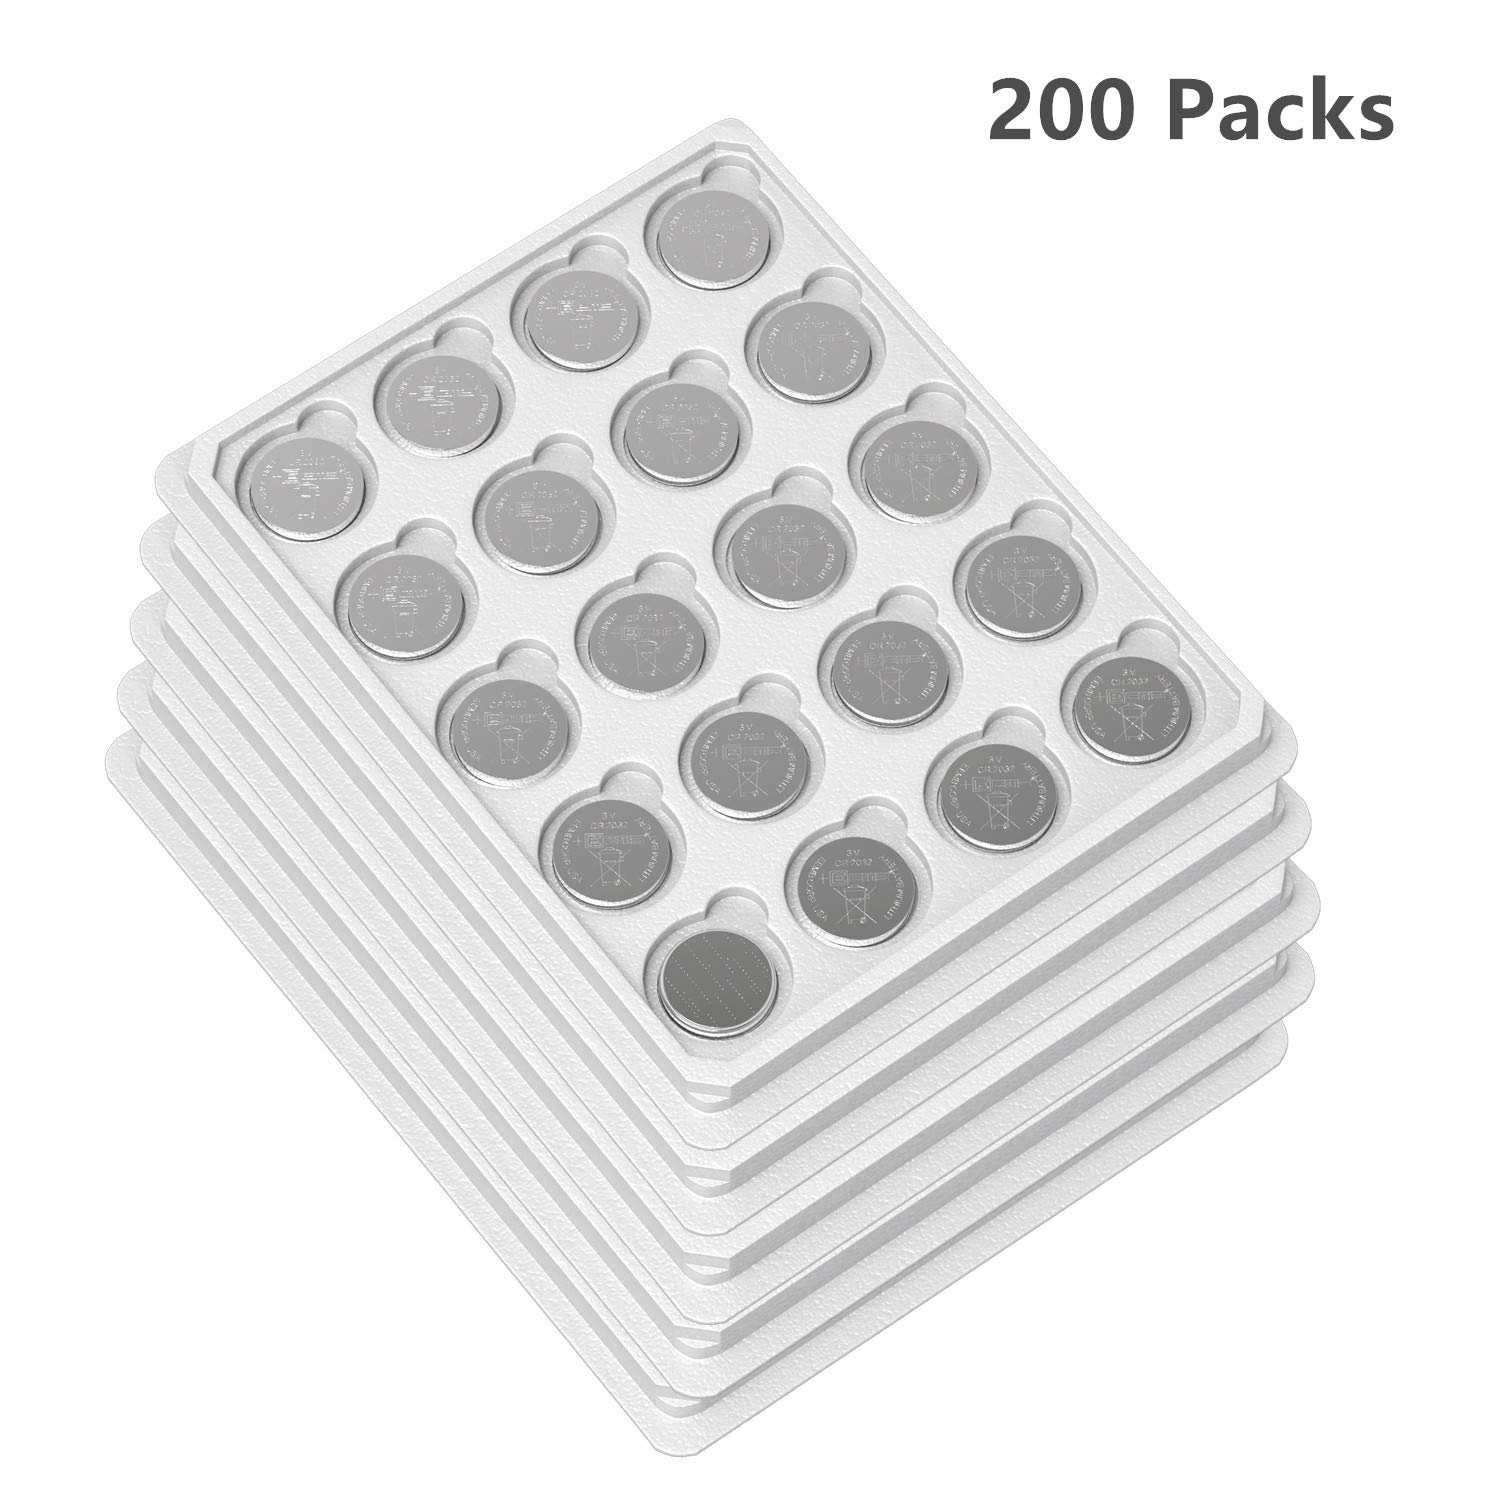 EEMB 3 V CR2025 150 mAh Battery- Button Coin Cell Lithium Battery Perfect for Watches, Car Remote Key, Alarm Clock Toys UL Certified (200PCS)